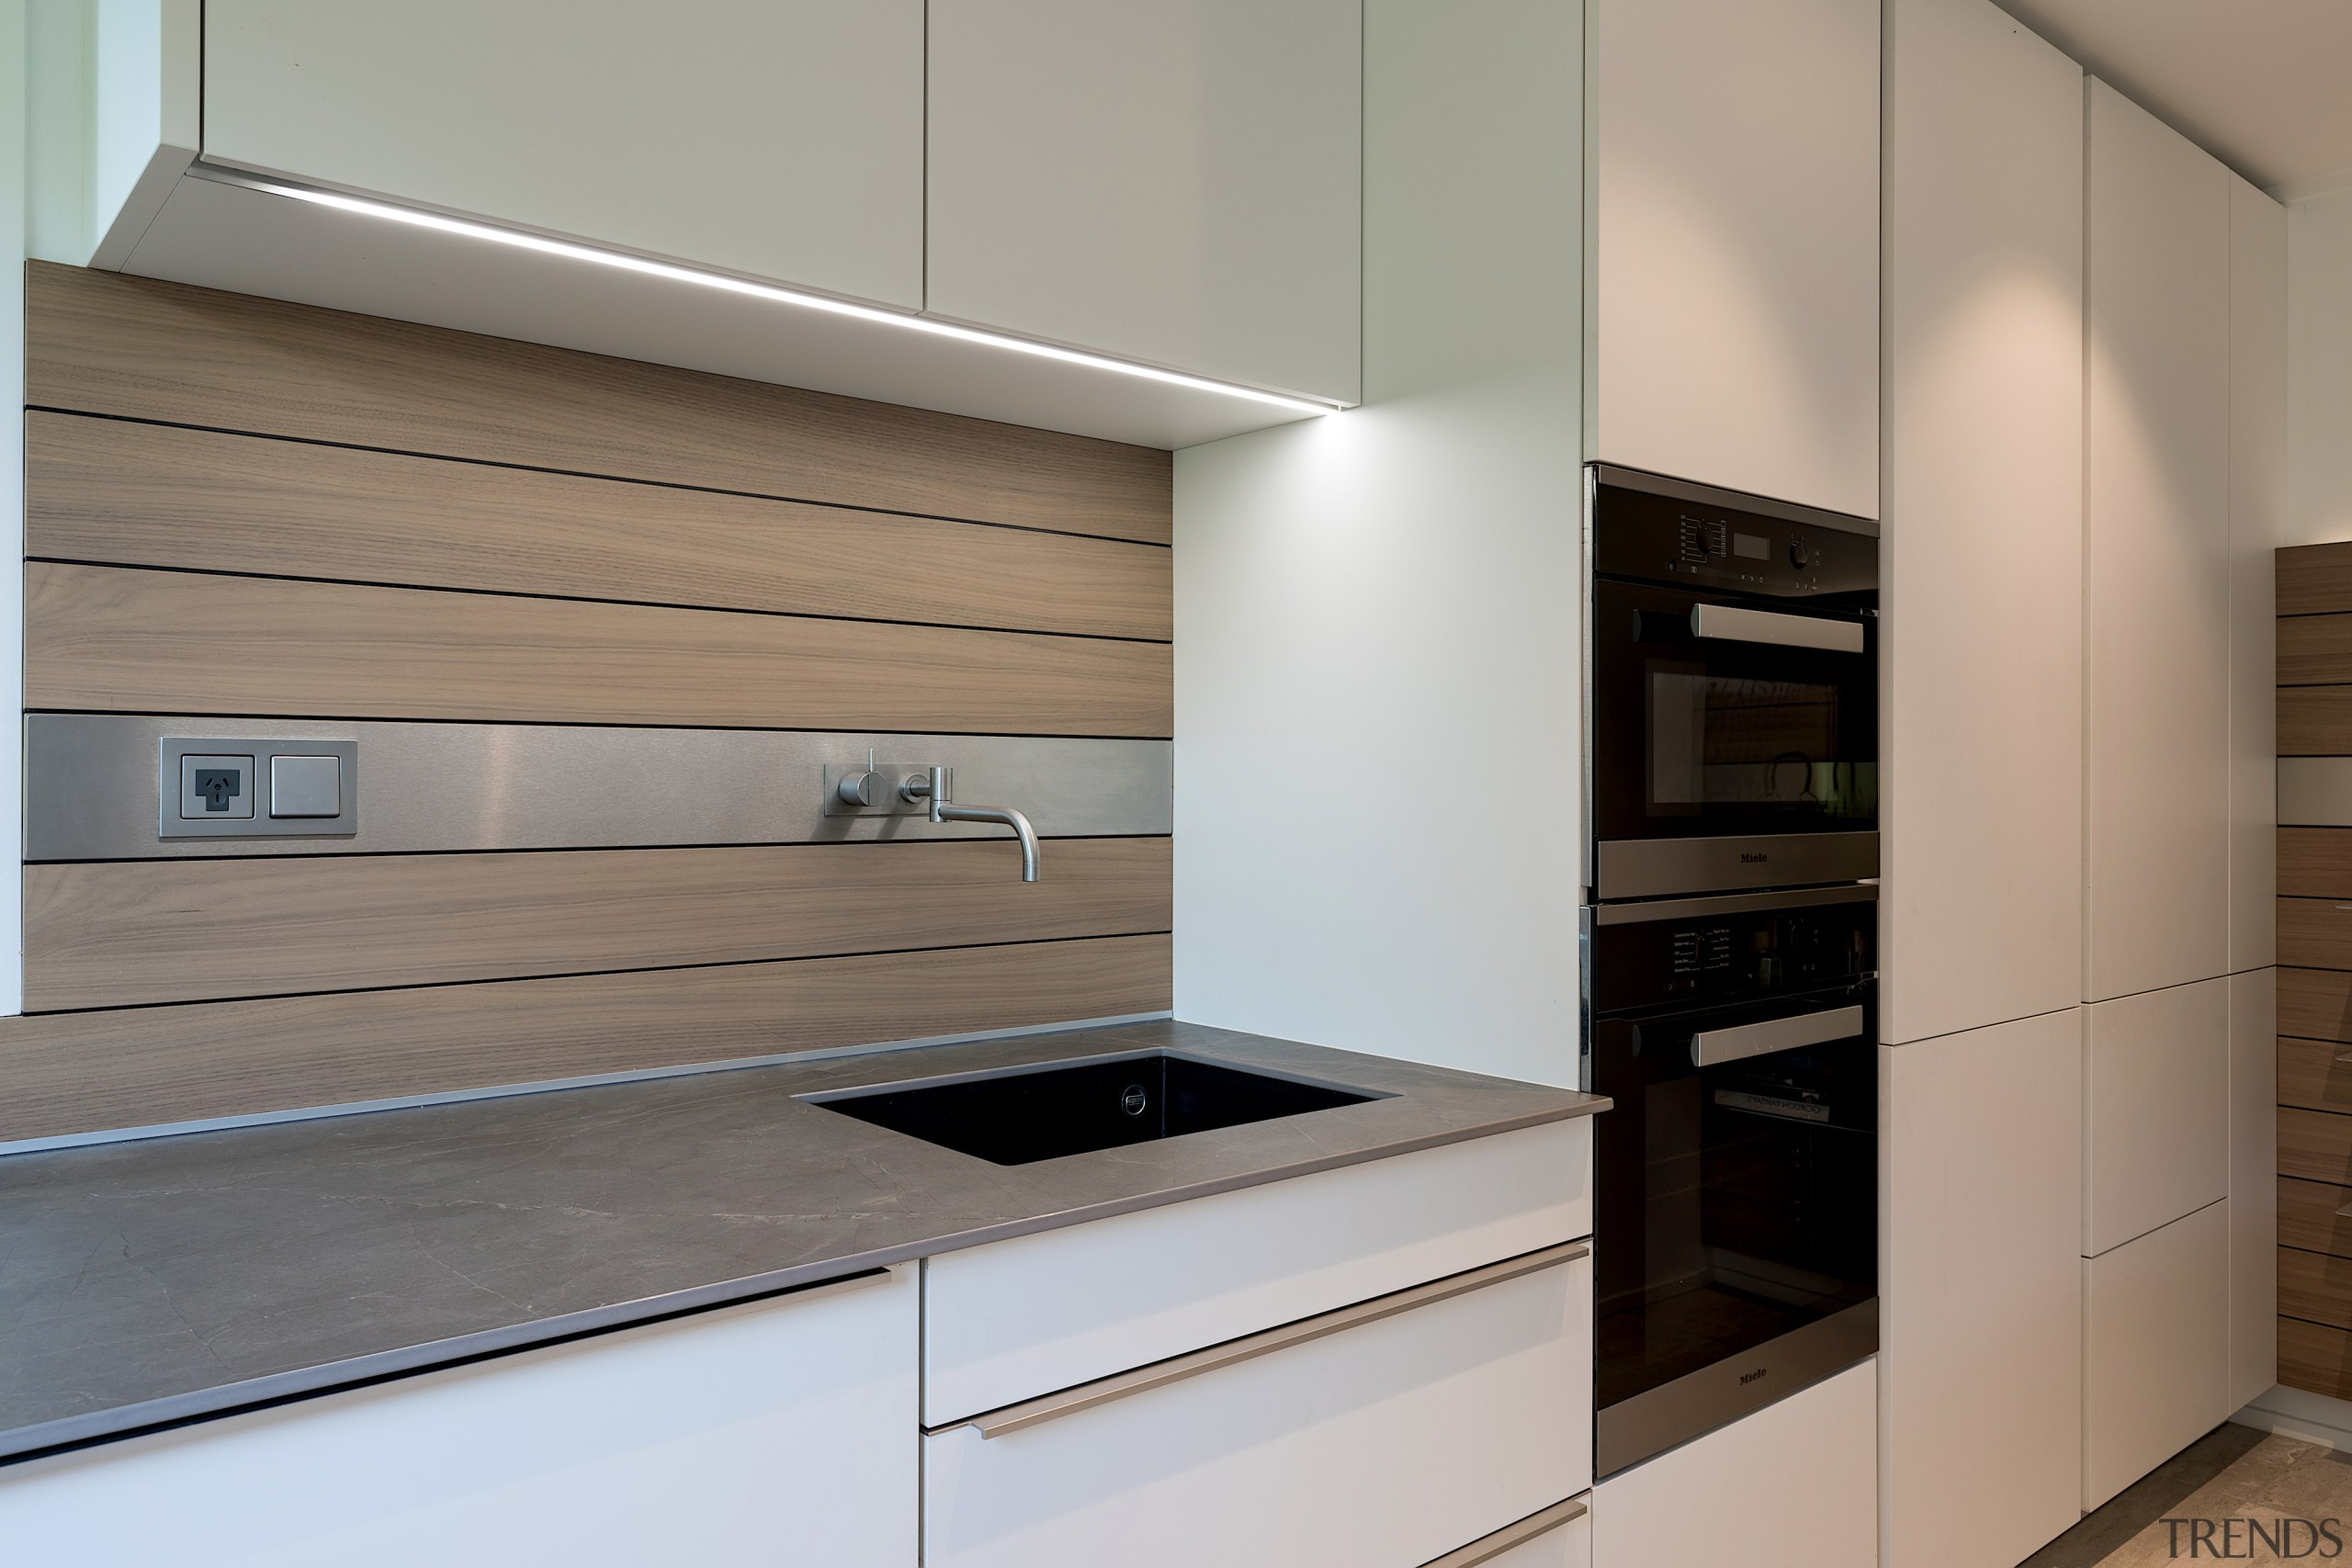 Understated satin lacquer cabinetry helps to blend this architecture, building, cabinetry, ceiling, countertop, cupboard, drawer, floor, furniture, home, home appliance, house, interior design, kitchen, material property, plywood, property, real estate, room, gray